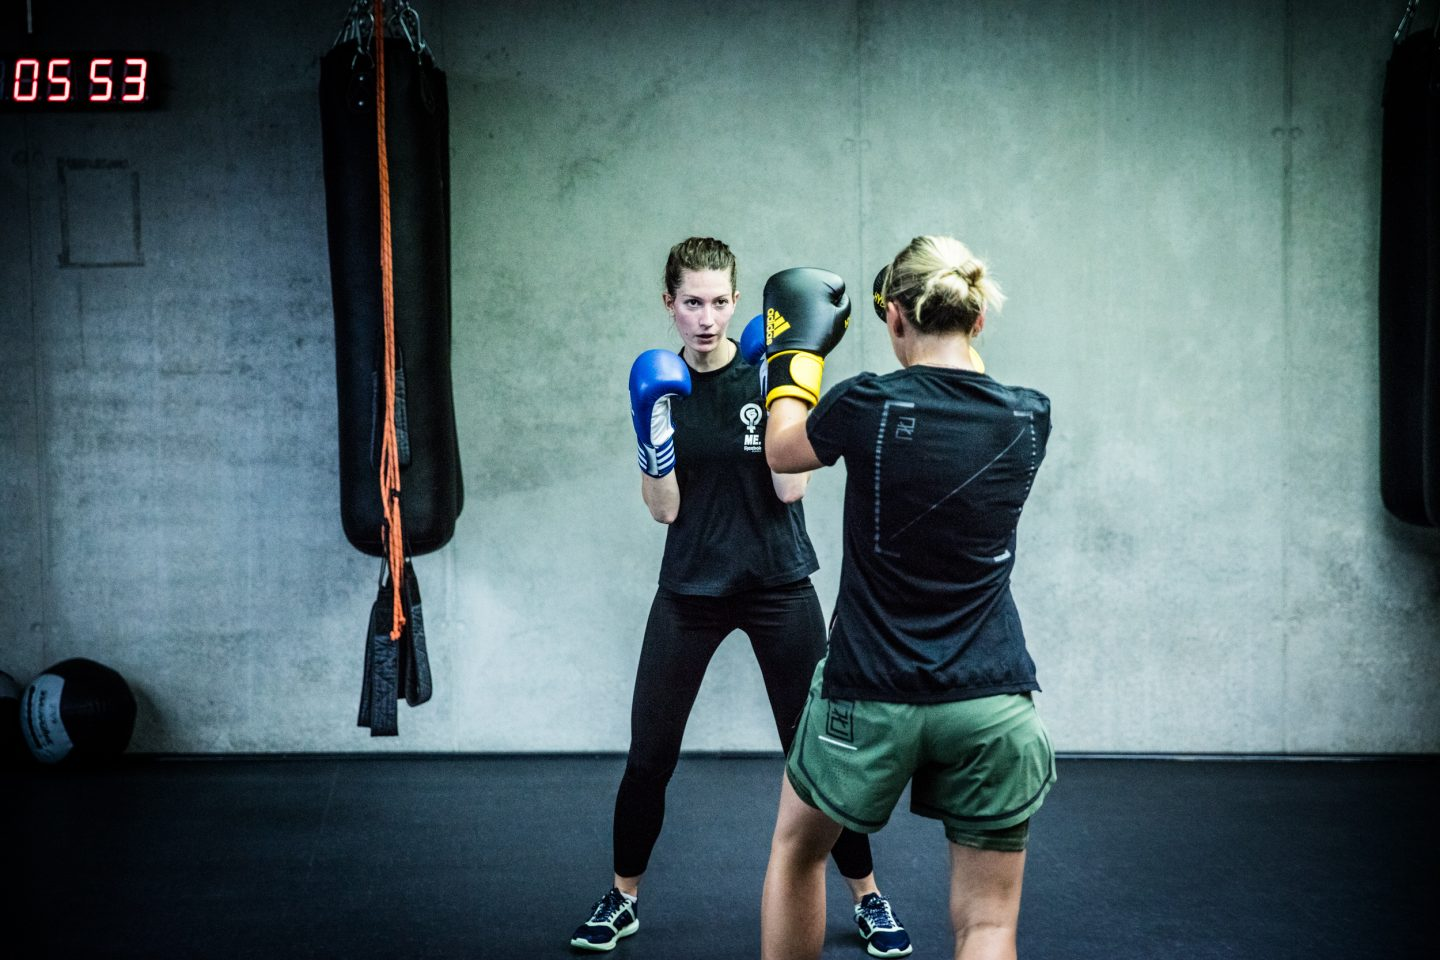 Boxing session two women practice fighting with their boxing gloves on